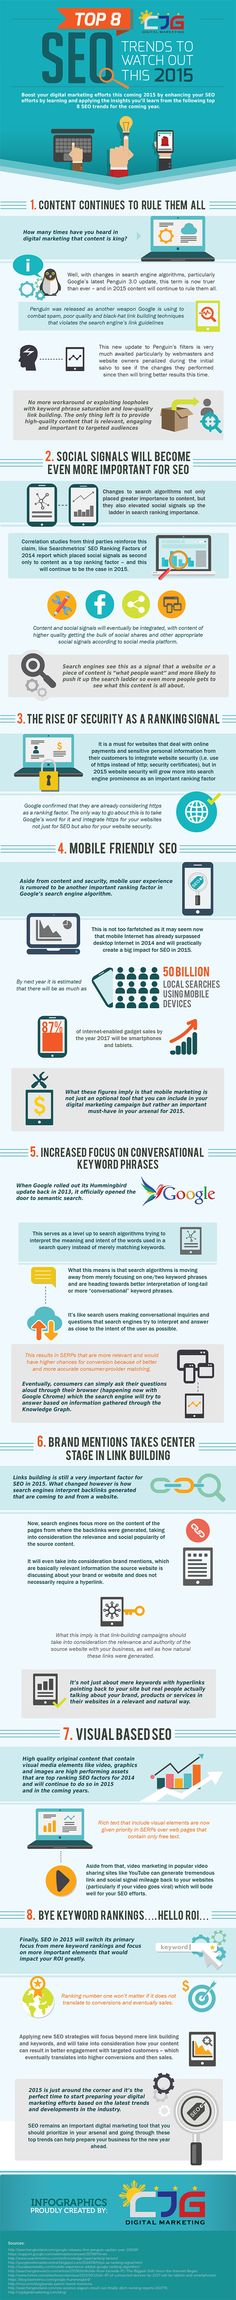 8 SEO Trends Every Website Owner Must Pay Attention To In 2015 #Infographic